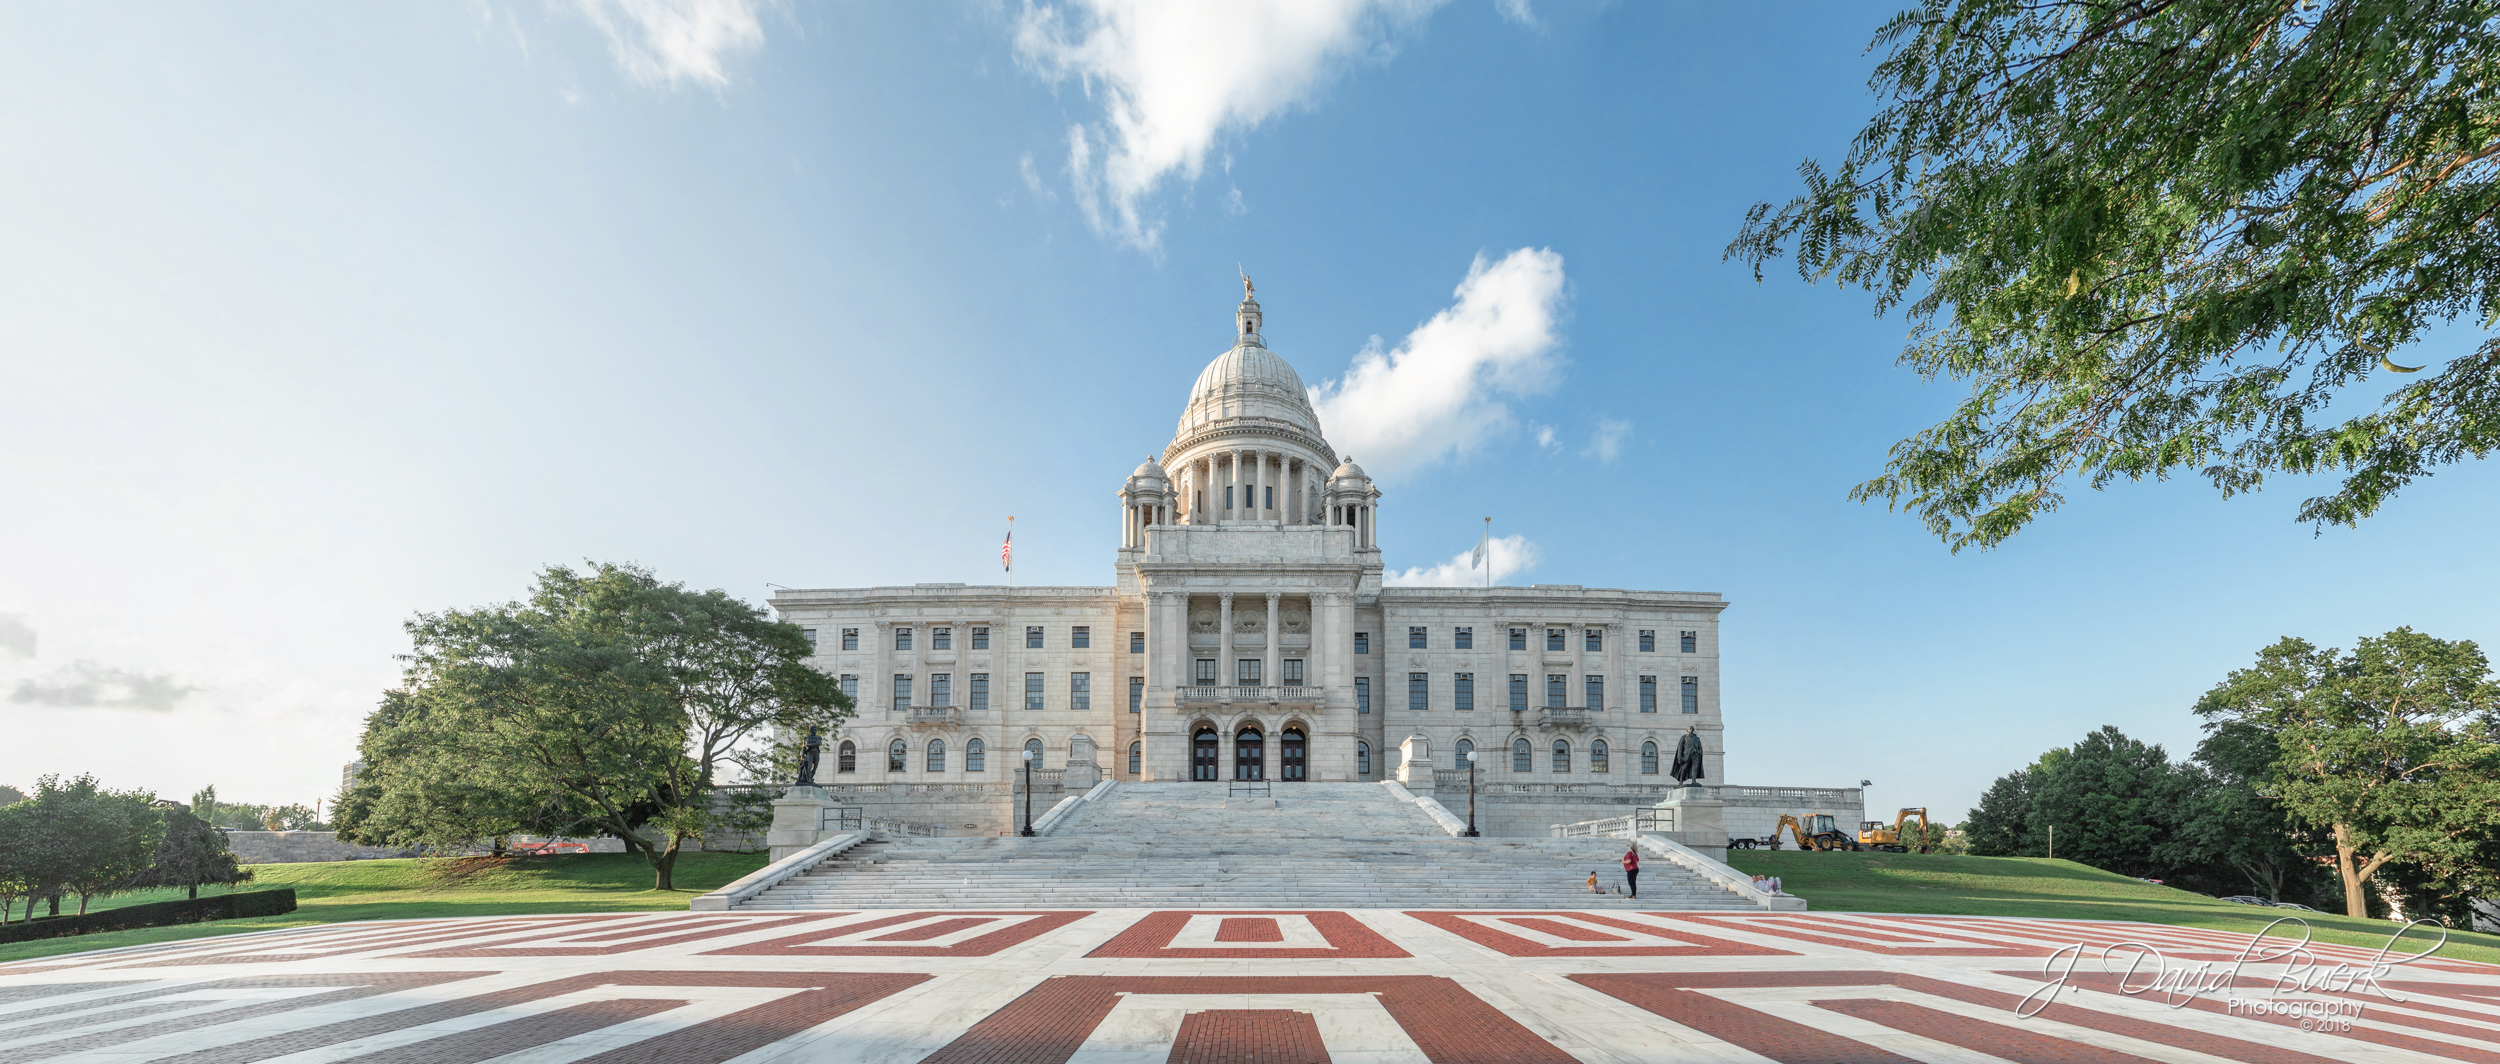 Southern face of the Rhode Island State House, Providence, Rhode Island.